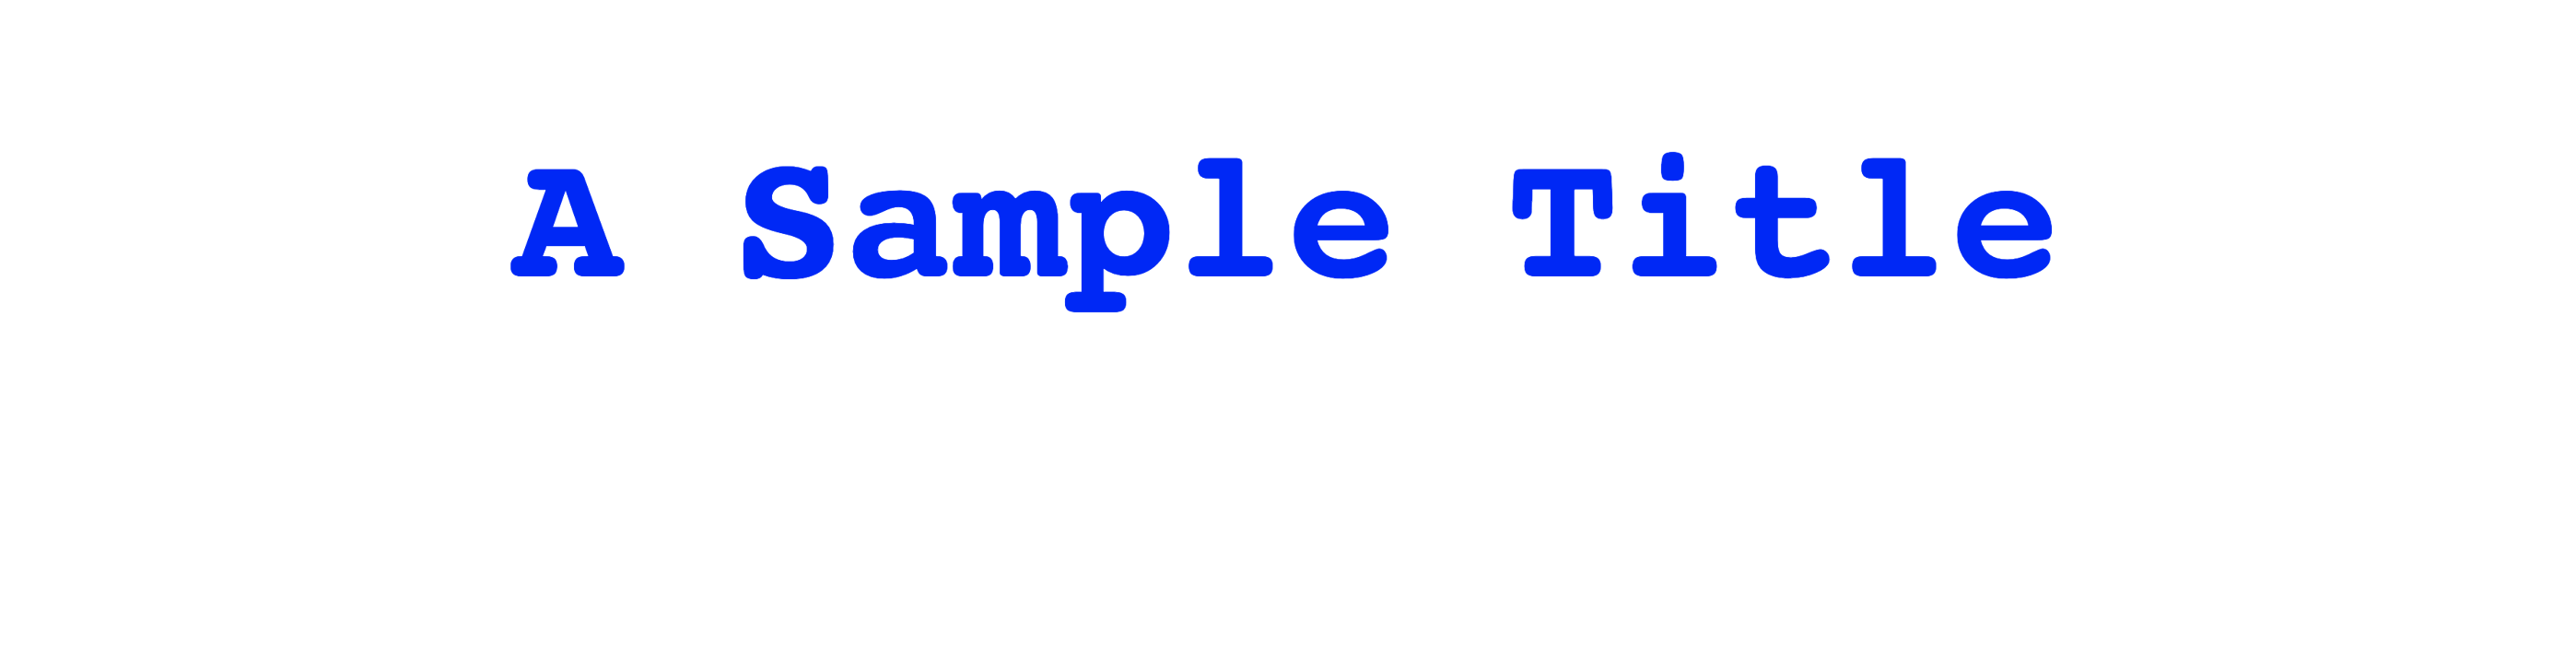 Styled header text